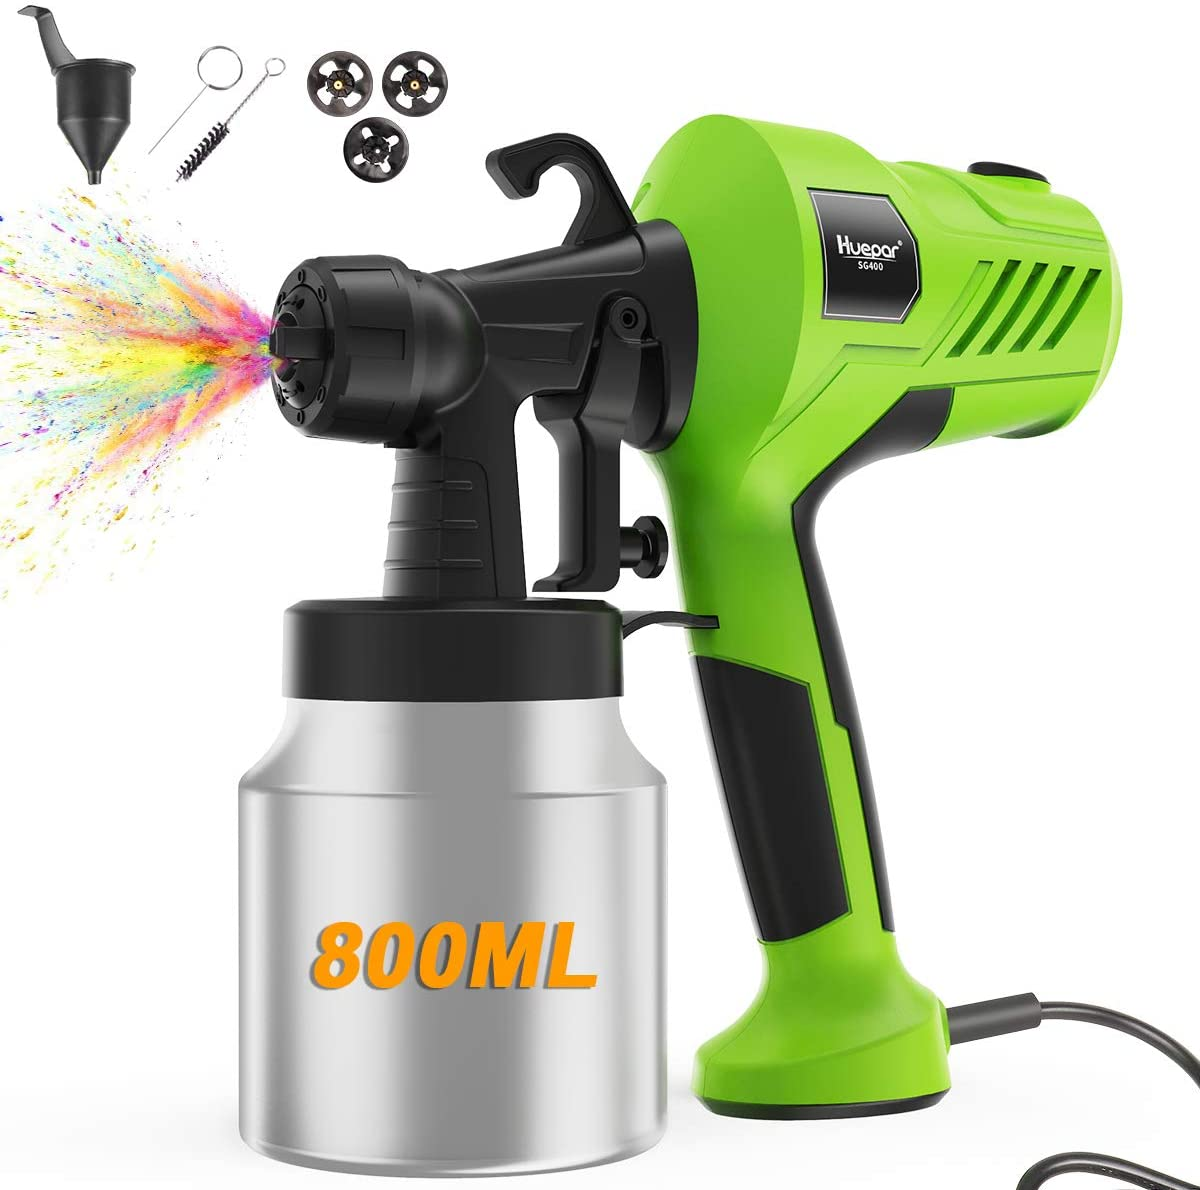 Paint Sprayer-Huepar 400W Electric Spray Gun with 800ml Detachable Metal Container, Adjustable Flow Control, 3 Nozzles(2 Copper&1 Plastic) and 3 Spray Patterns, 6.56Ft Power Cord-for Home & Outdoors